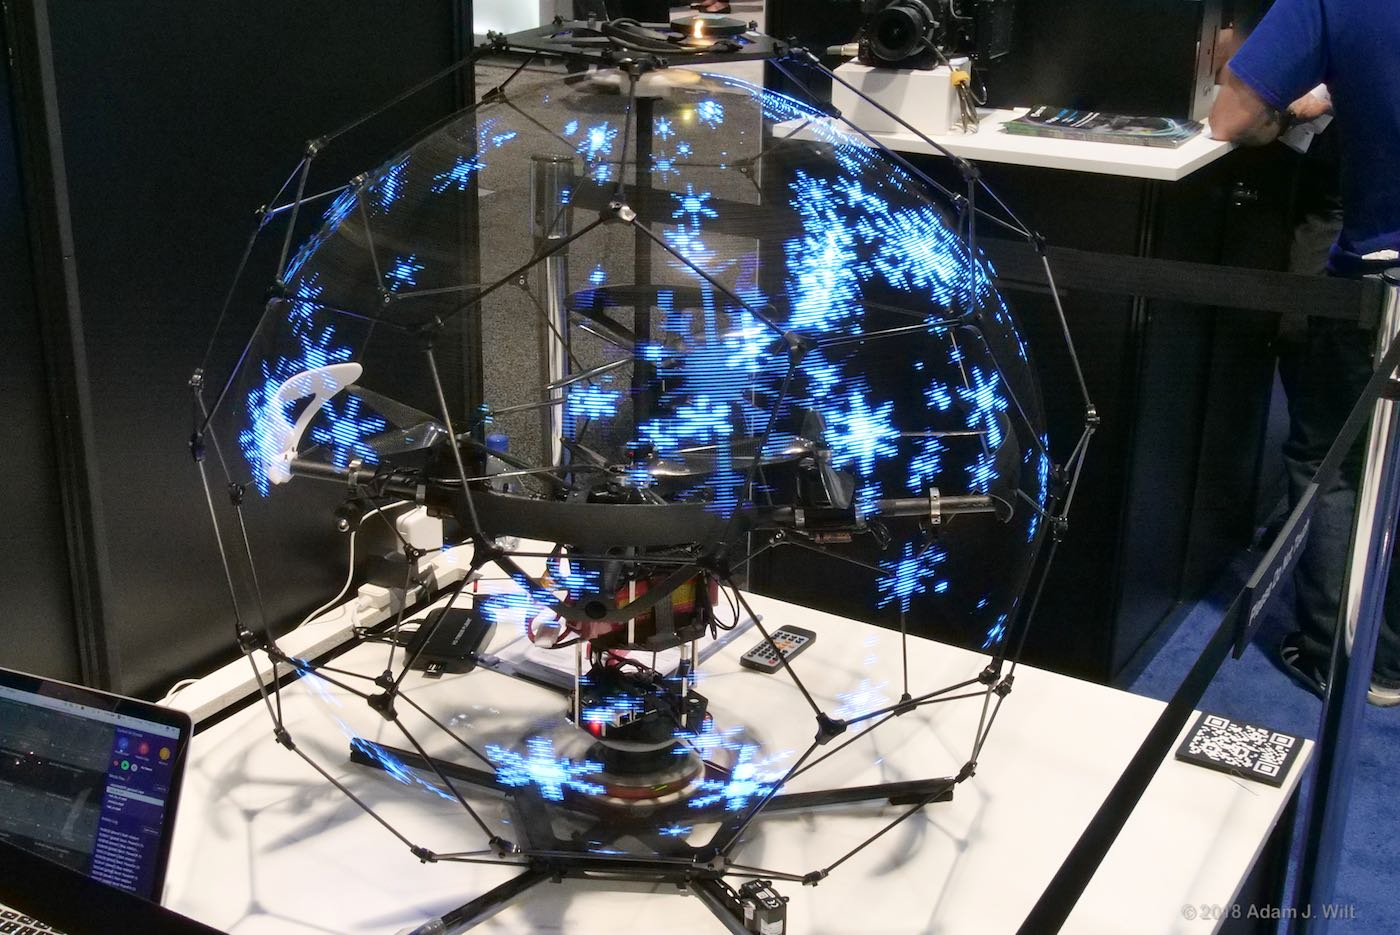 Spherical Drone Display, spun up for snowflakes